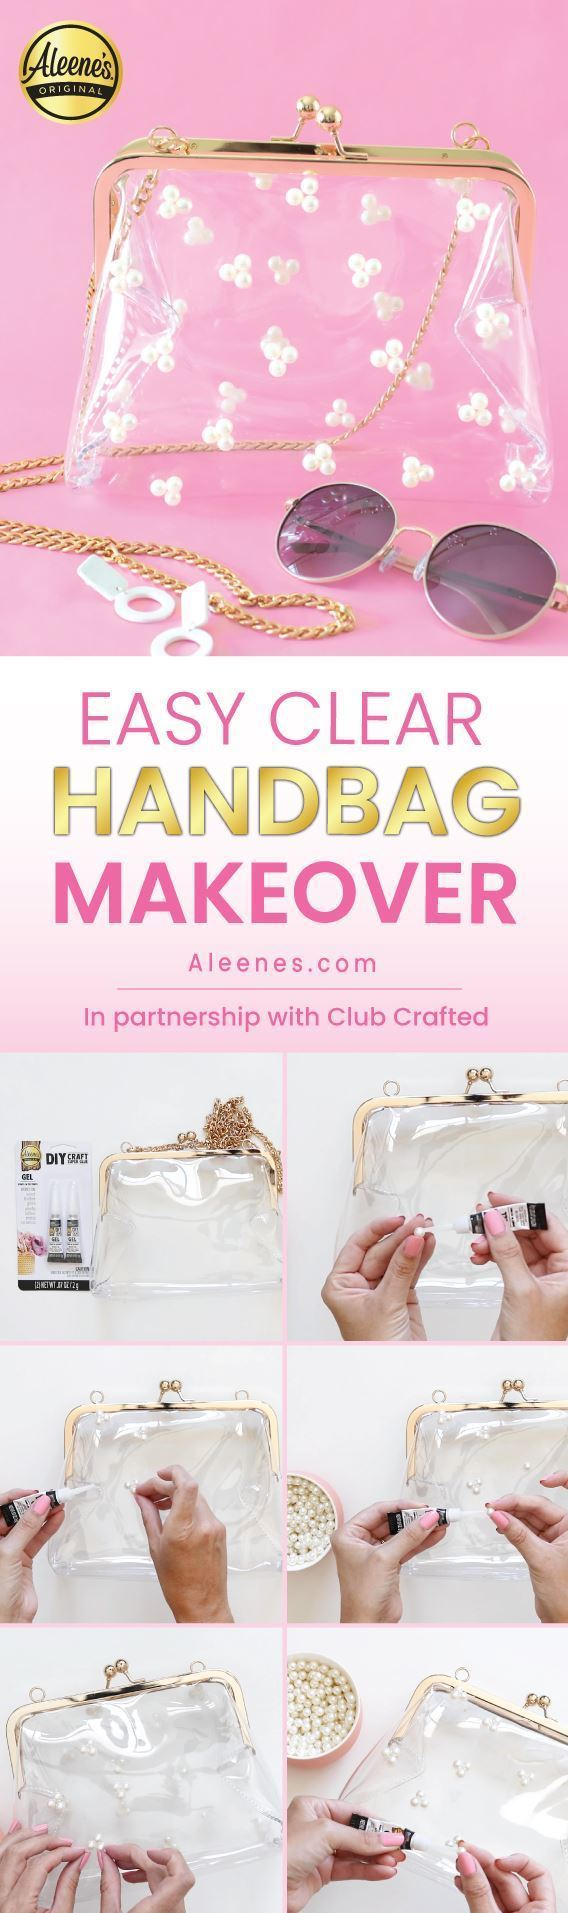 Clear Stadium Bag Makeover with Aleene's